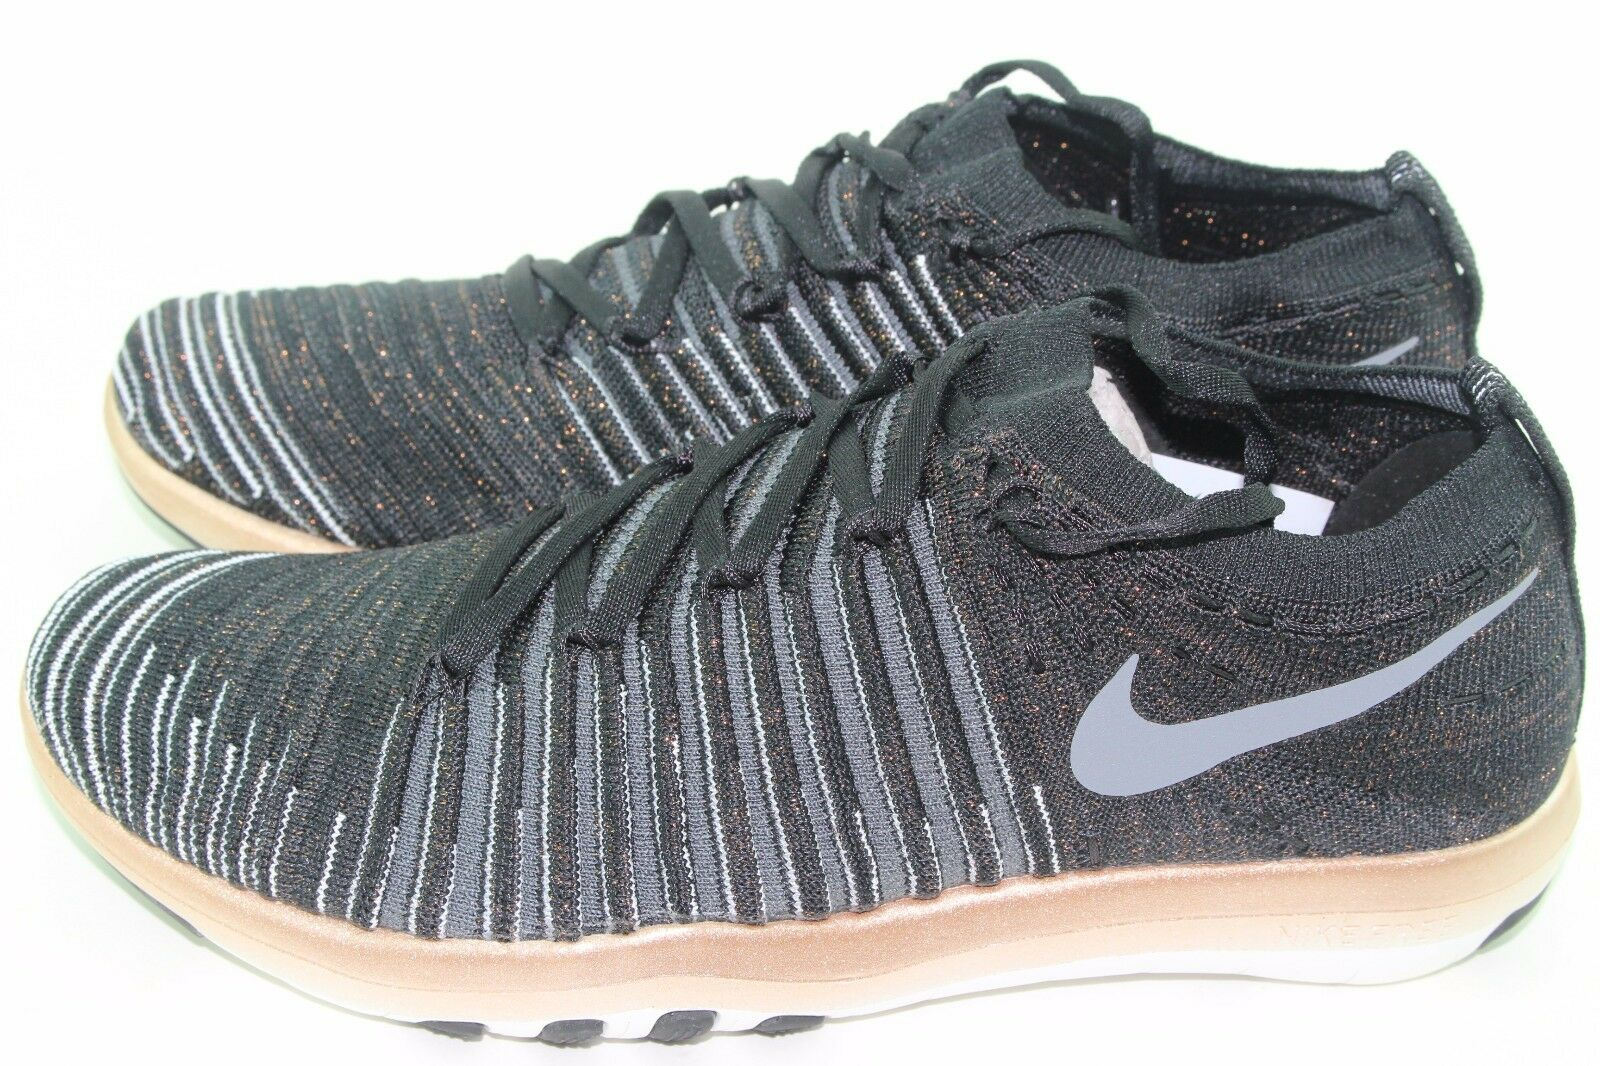 NIKE FREE TRANSFORM FLYKNIT WOMEN SIZE 11.0 BLACK COOL COOL COOL GREY NEW TRAINING LEGIT 41166c